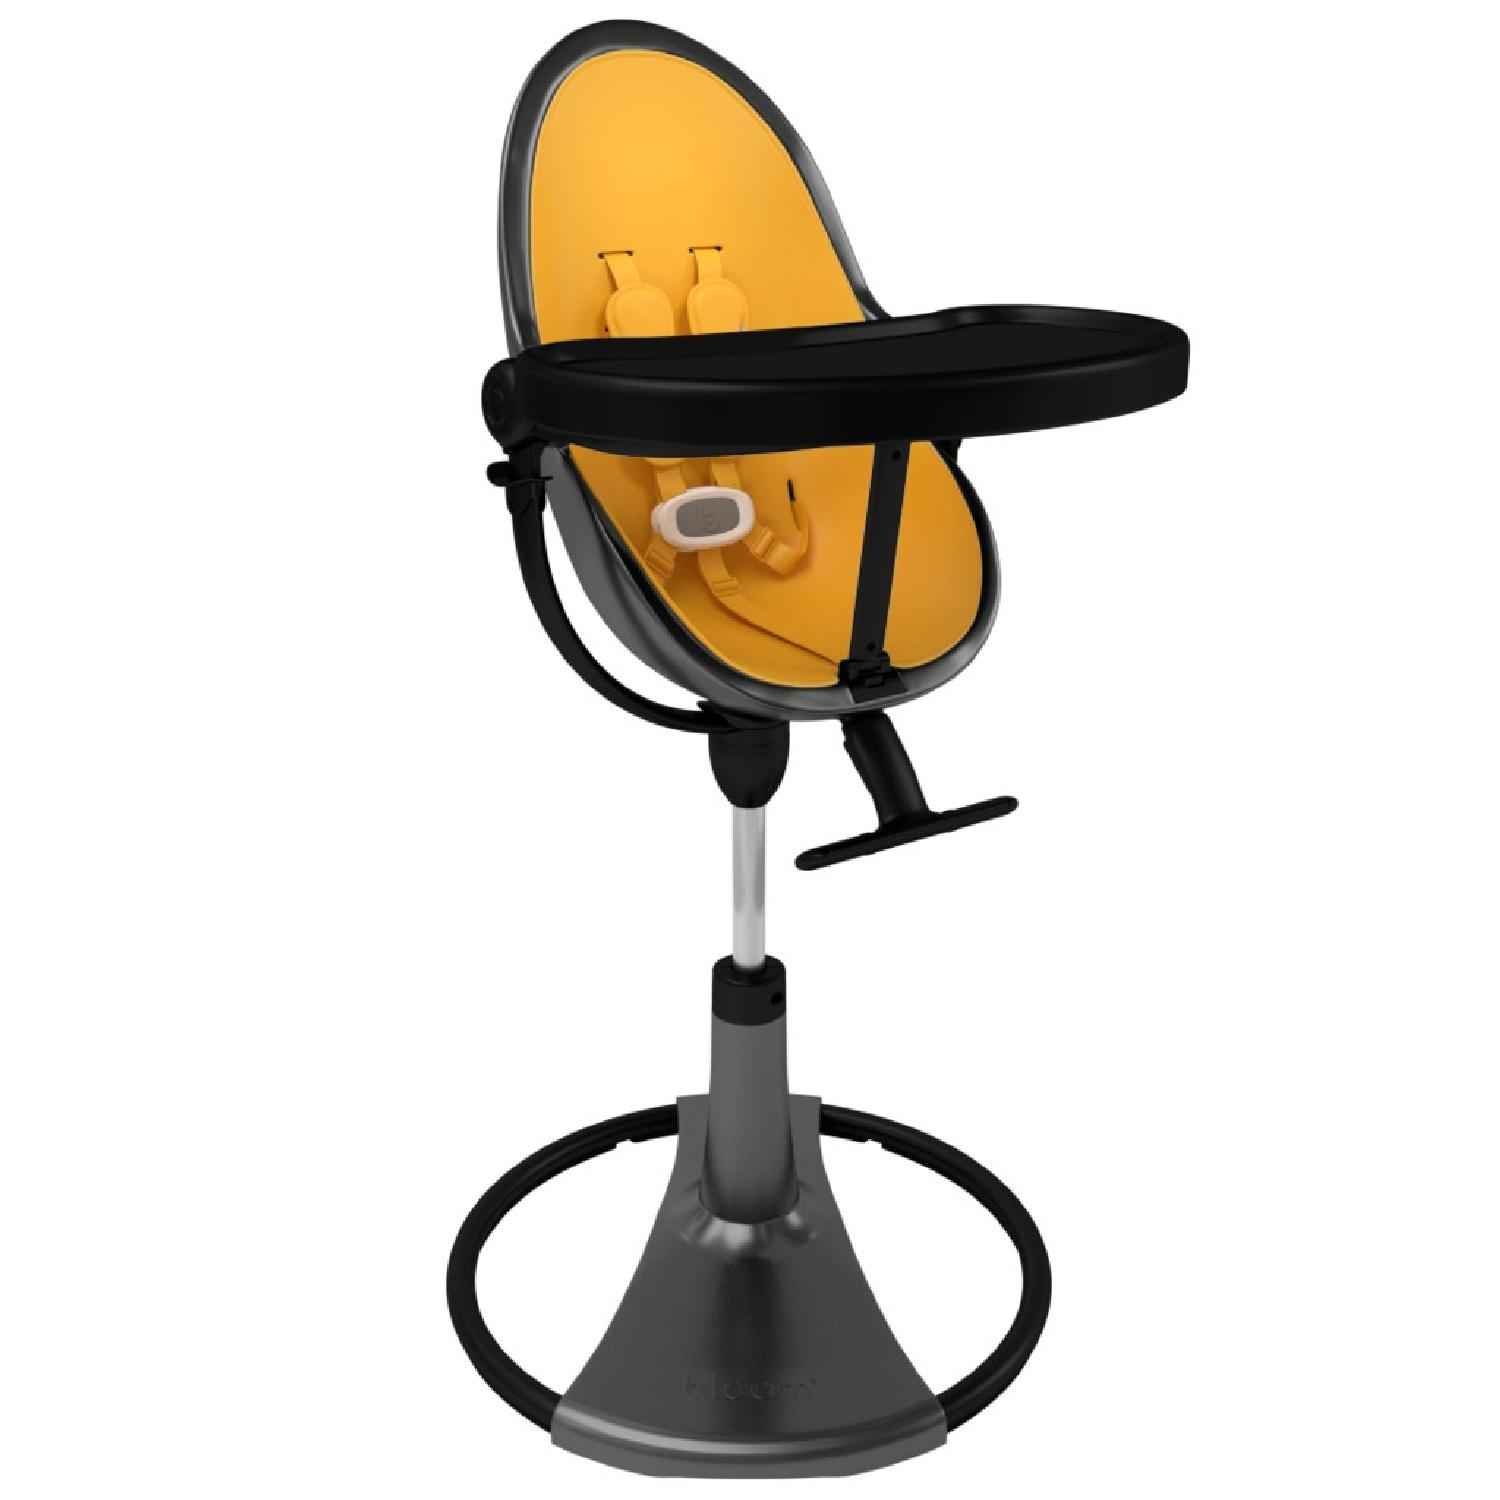 Bloom Fresco Highchair in Black w/ Yellow Seat Liners - image-1